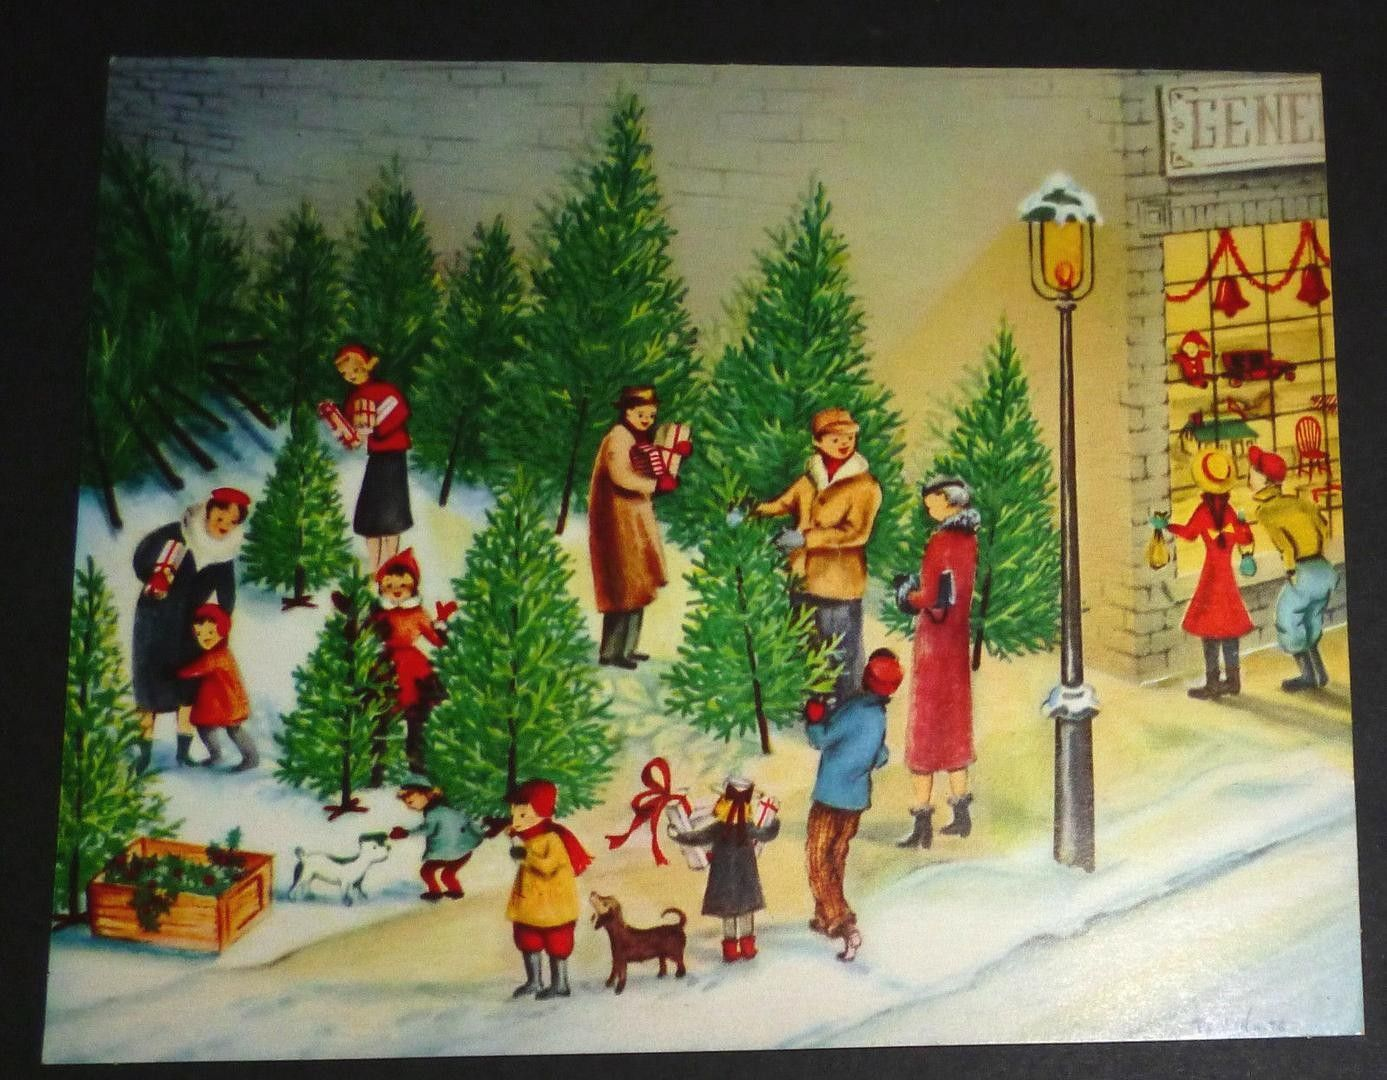 Vintage Christmas Card Family At Xmas Tree Lot Shopping Children Toy Store Mcm 1889444560 Vintage Christmas Cards Christmas Cards Vintage Christmas